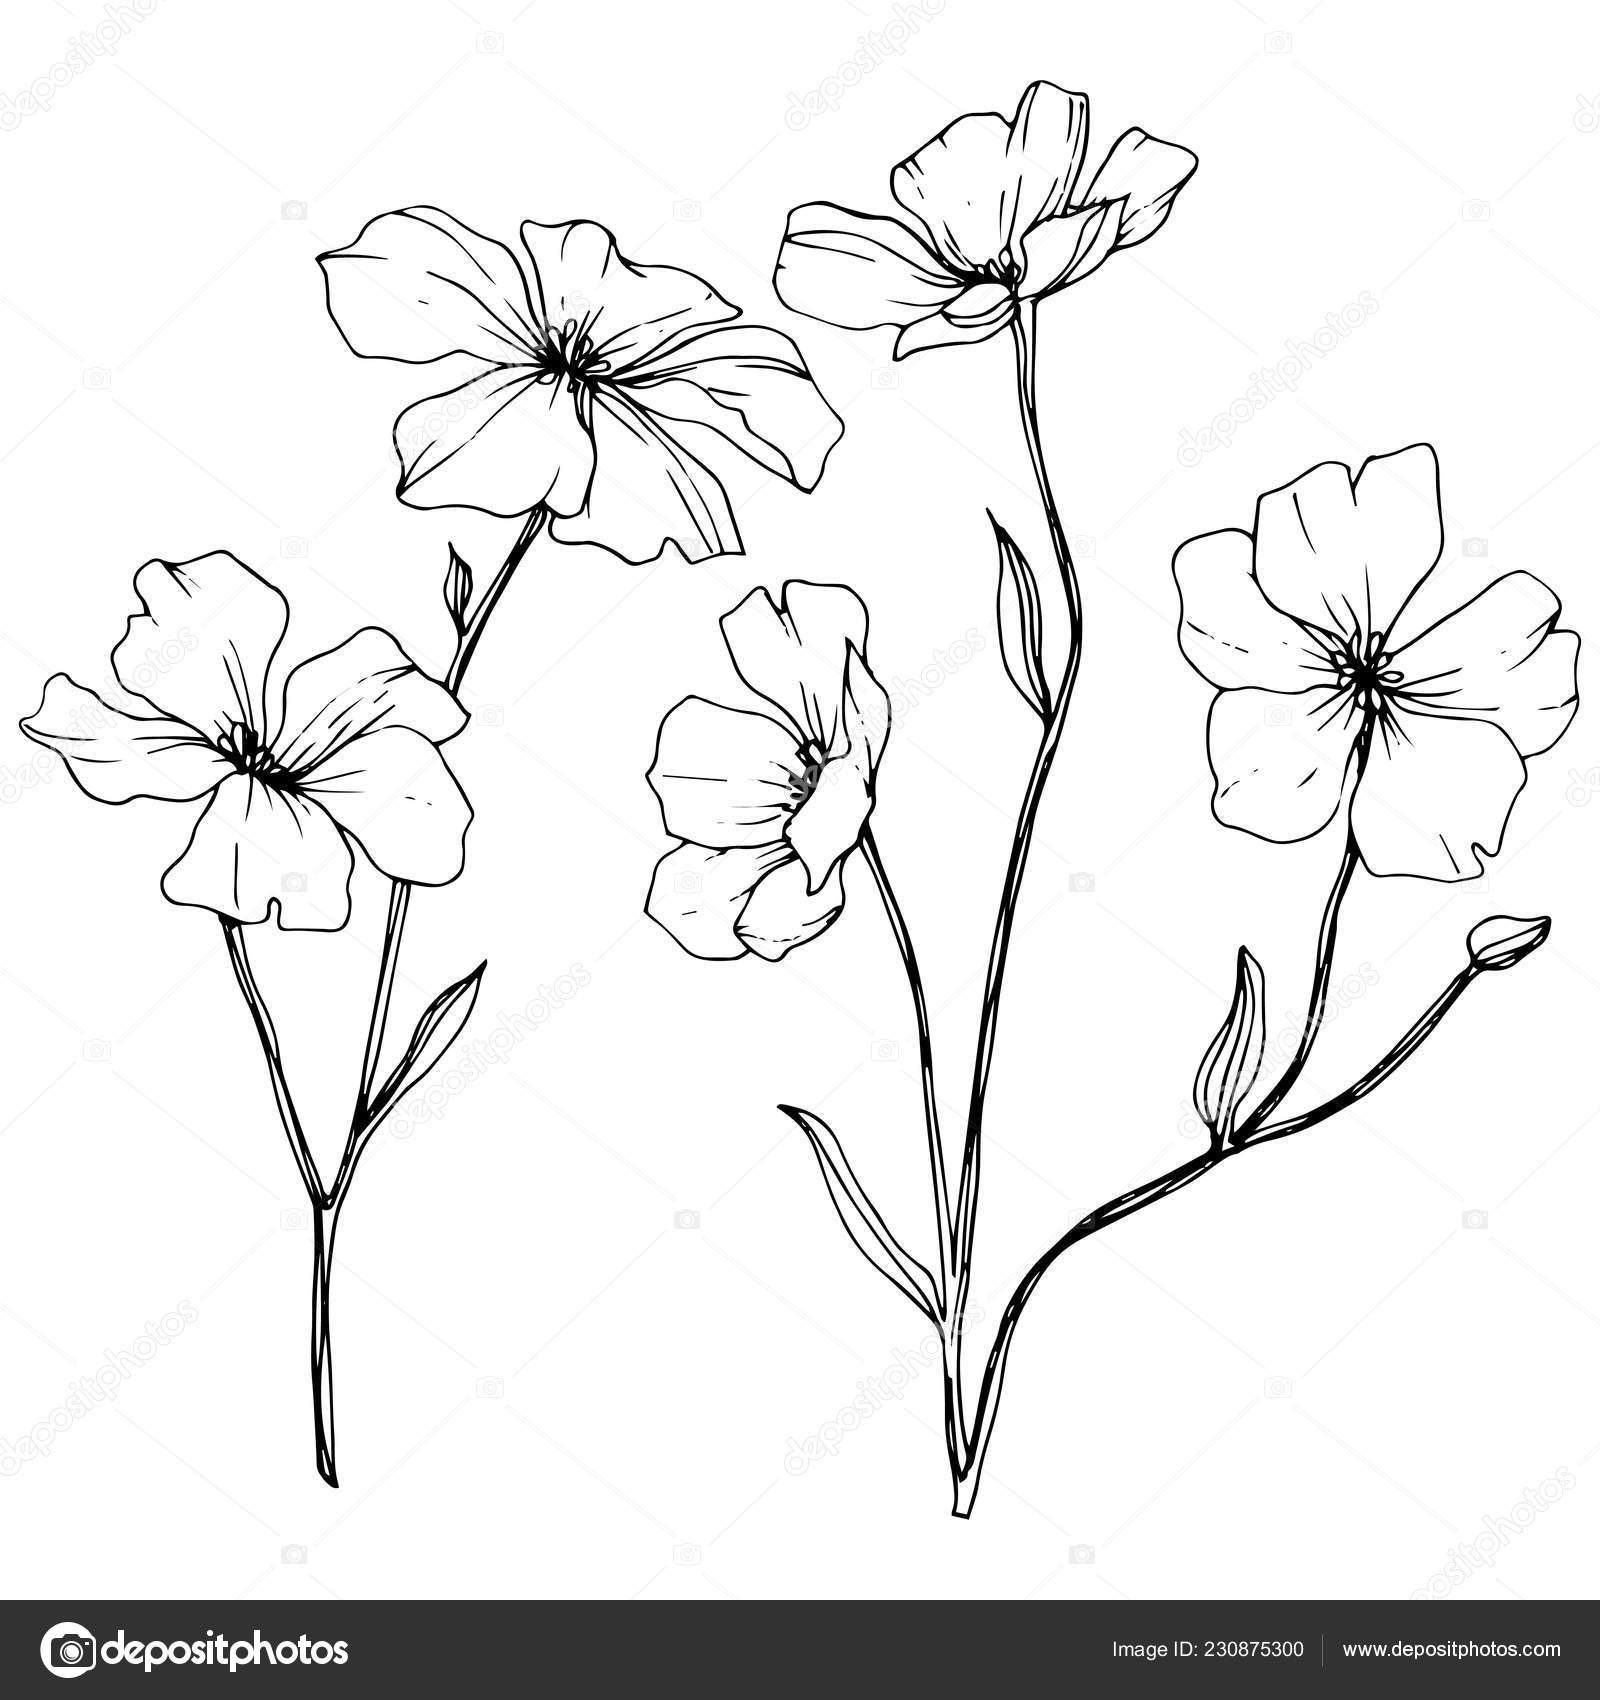 Vector Isolated Flax Flowers Illustration Element White Background Black White Vector Image By C Andreyanush Vector Stock 230875300